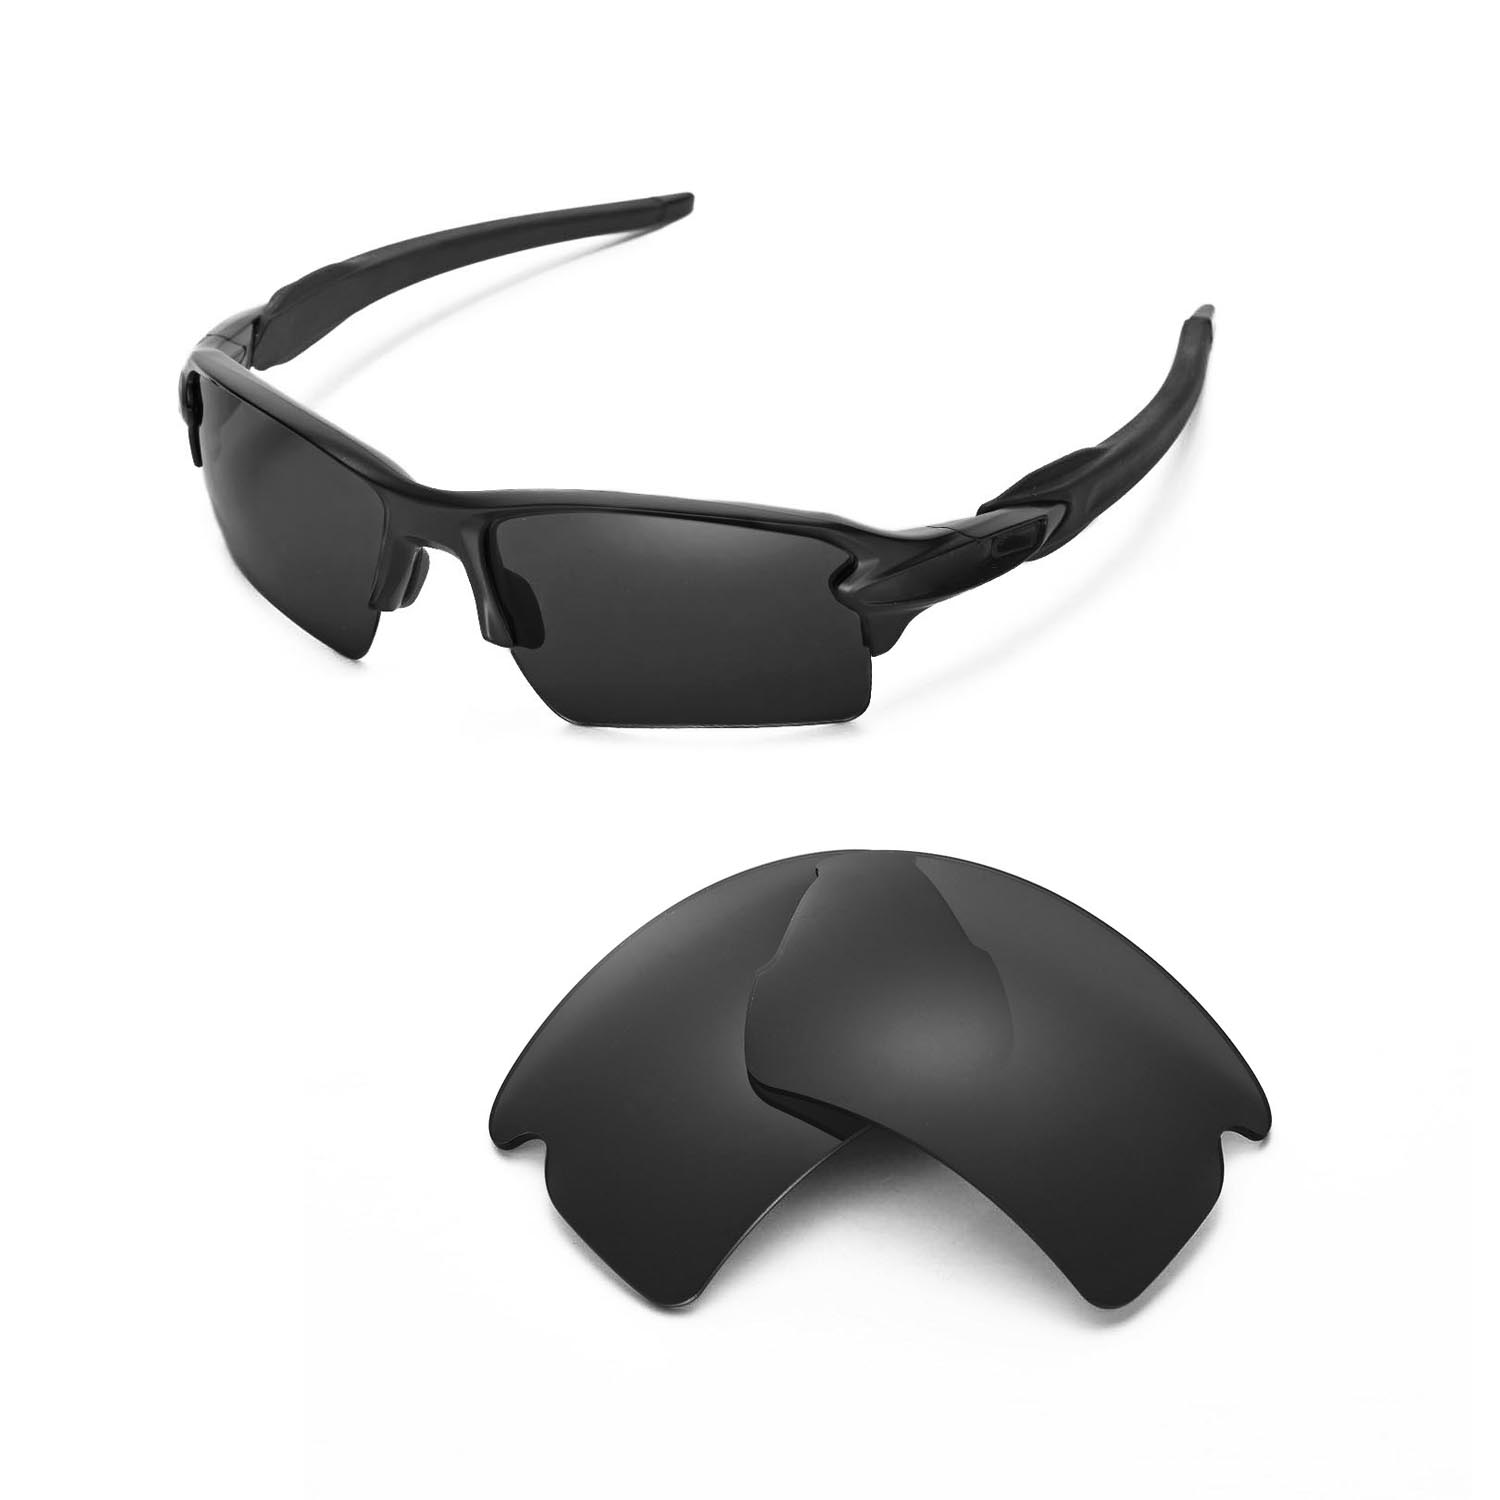 009290f40f9 Details about New Walleva Polarized Black Replacement Lenses For Oakley  Flak 2.0 XL Sunglasses